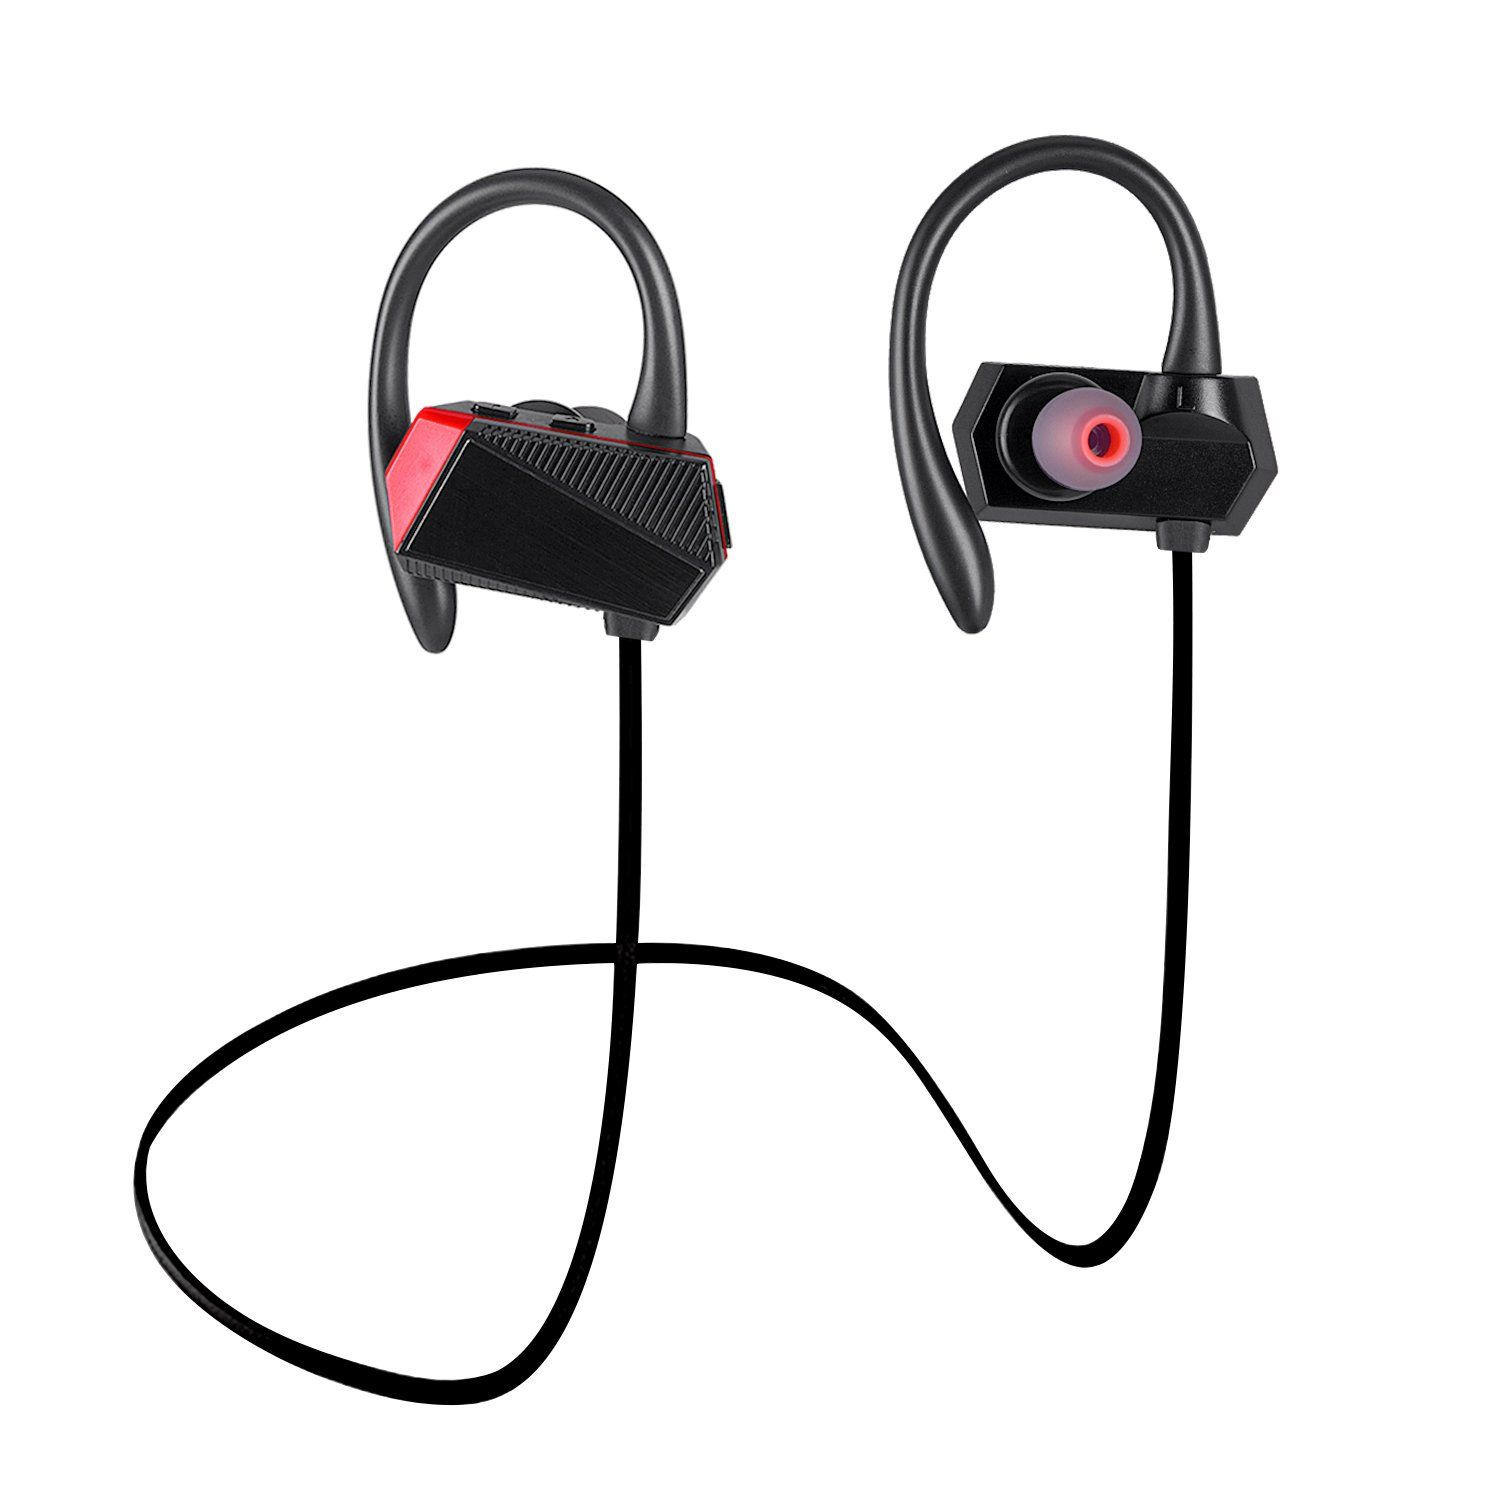 Wireless Earbuds Apply Bluetooth Headset Active Noise Canceling Headset  IPX4 Sweatproof Earphones with Mic for Running cd850f0e5662b